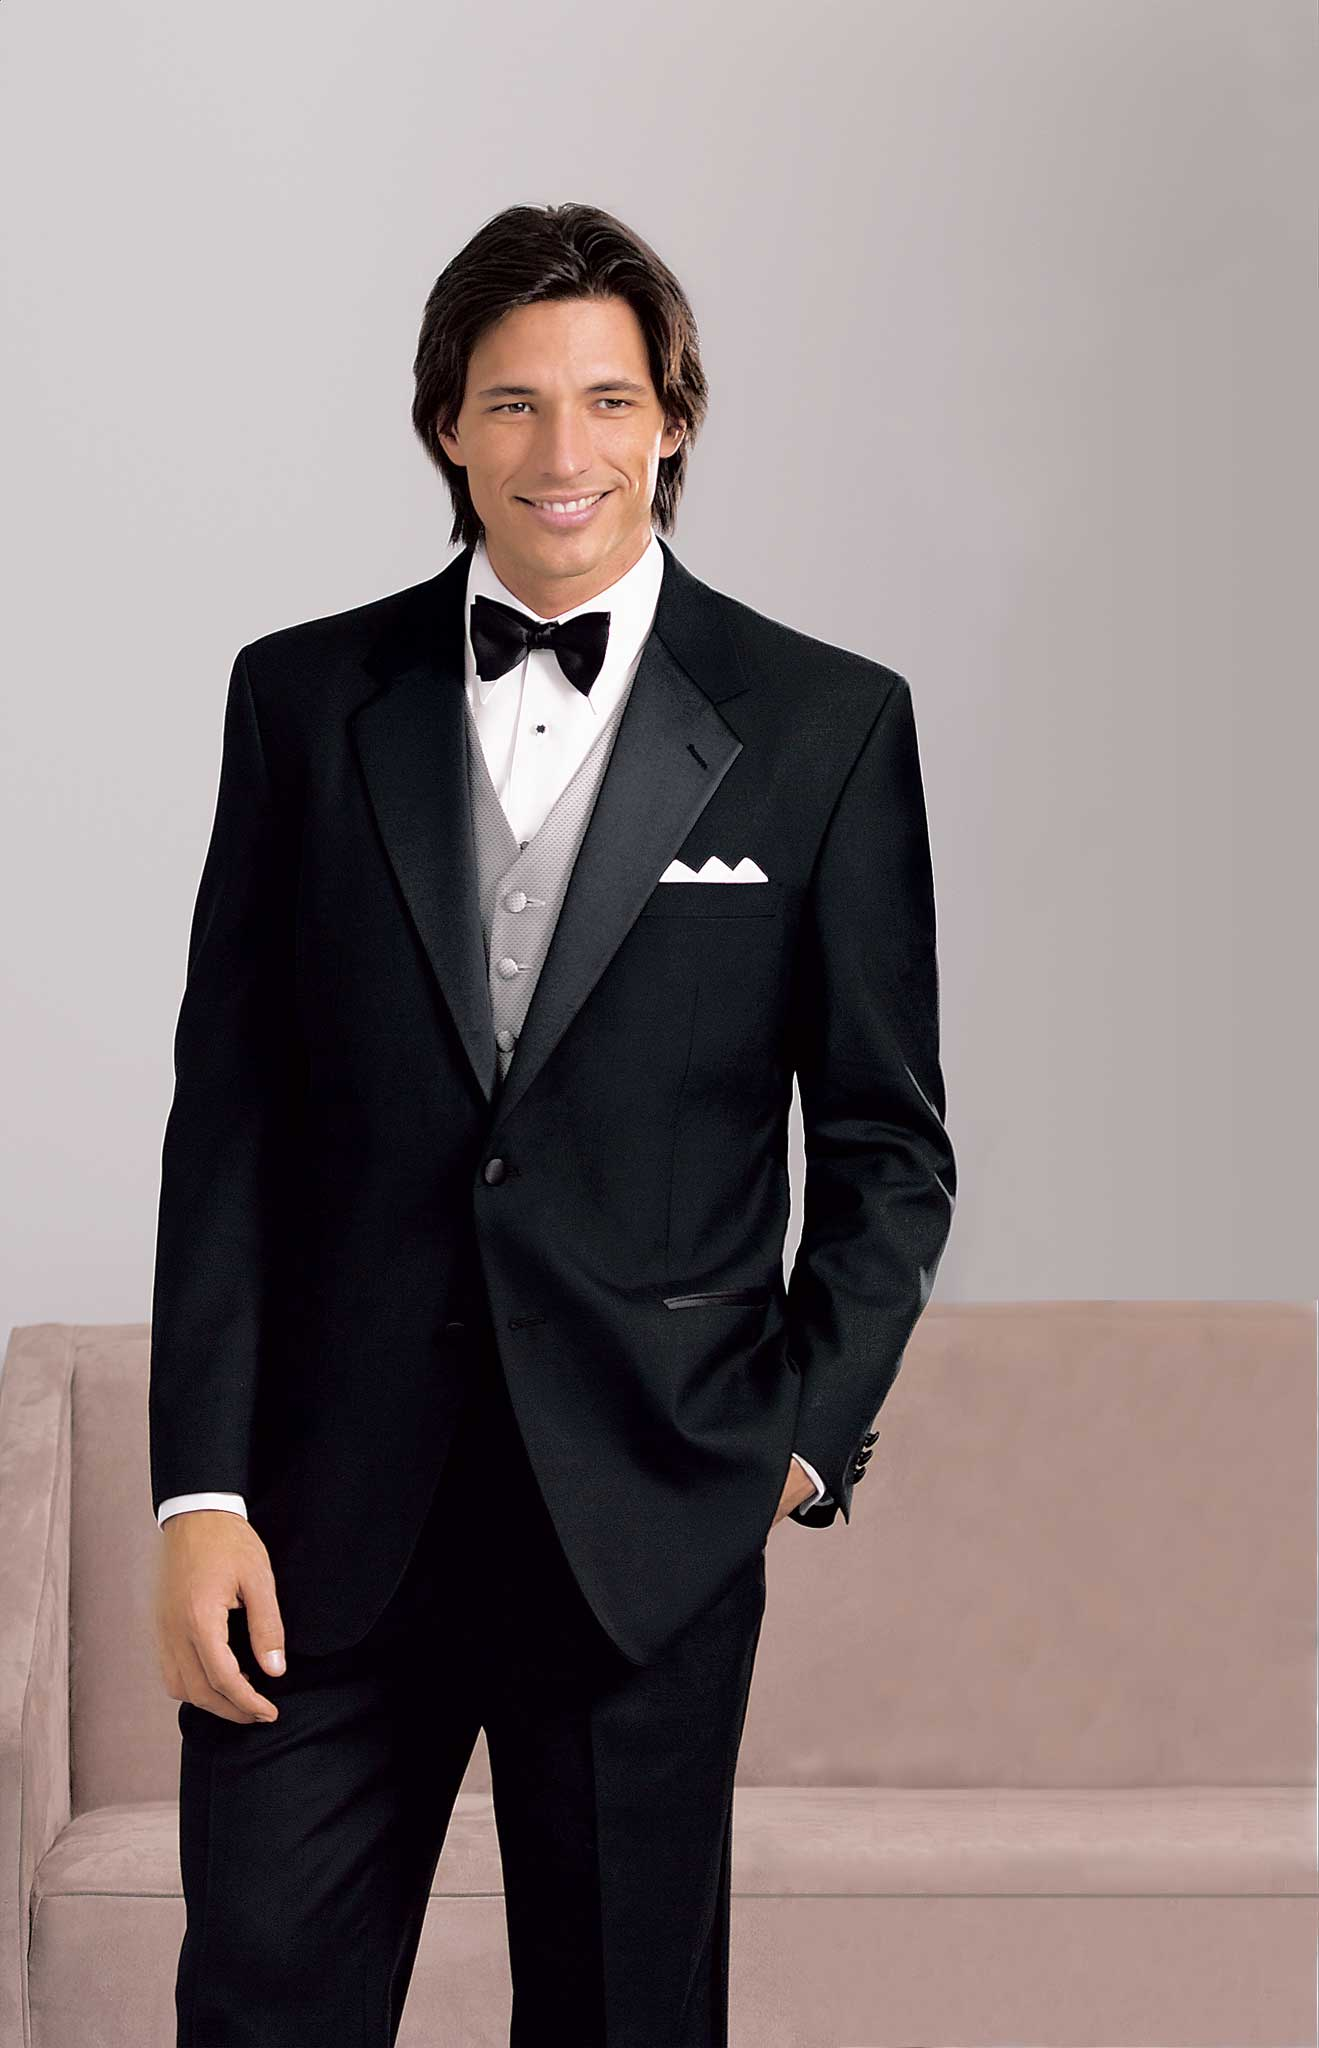 Men S Suits On Pinterest: Men's Tuxedo Tailoring